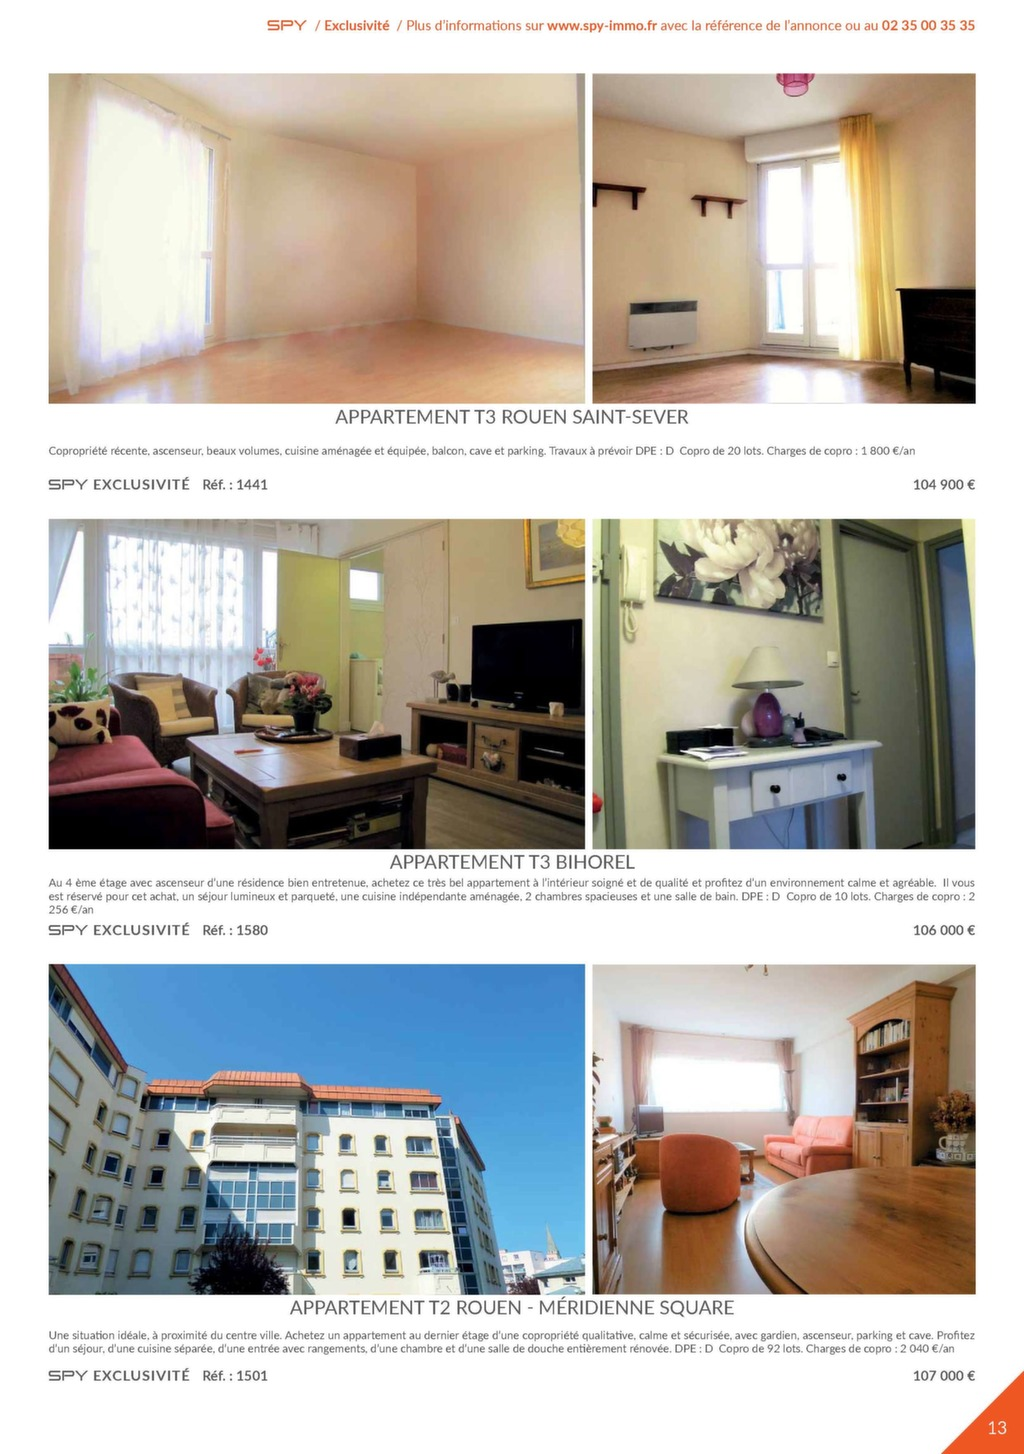 Home Rouen N 37 By Spy Magazine Immo